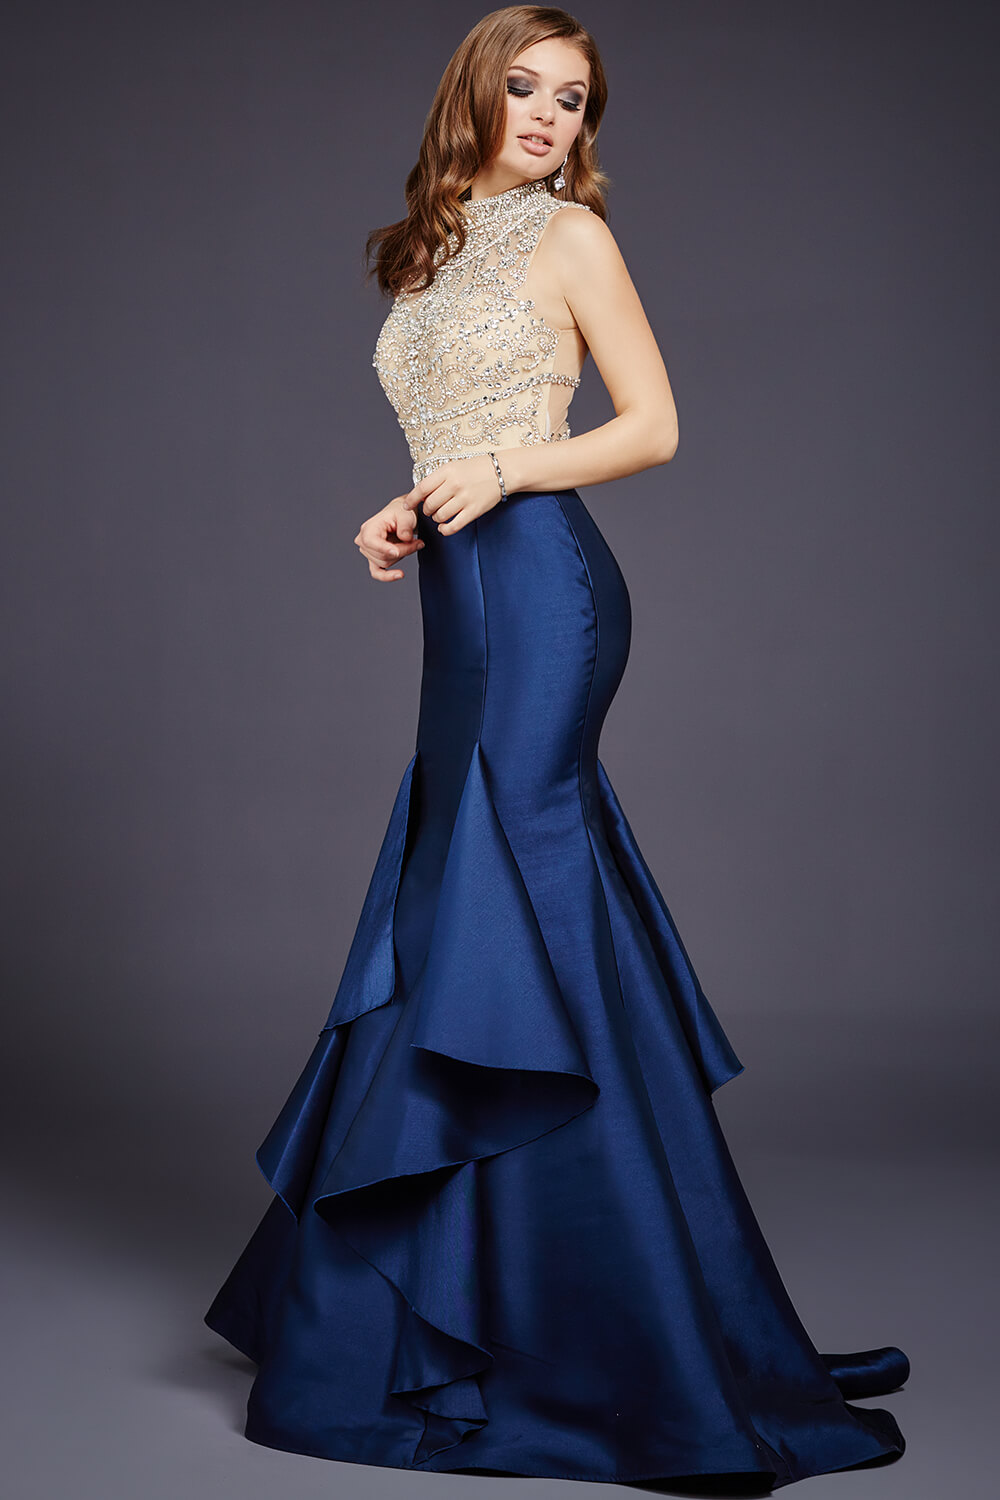 Gown Evening Dresses 46